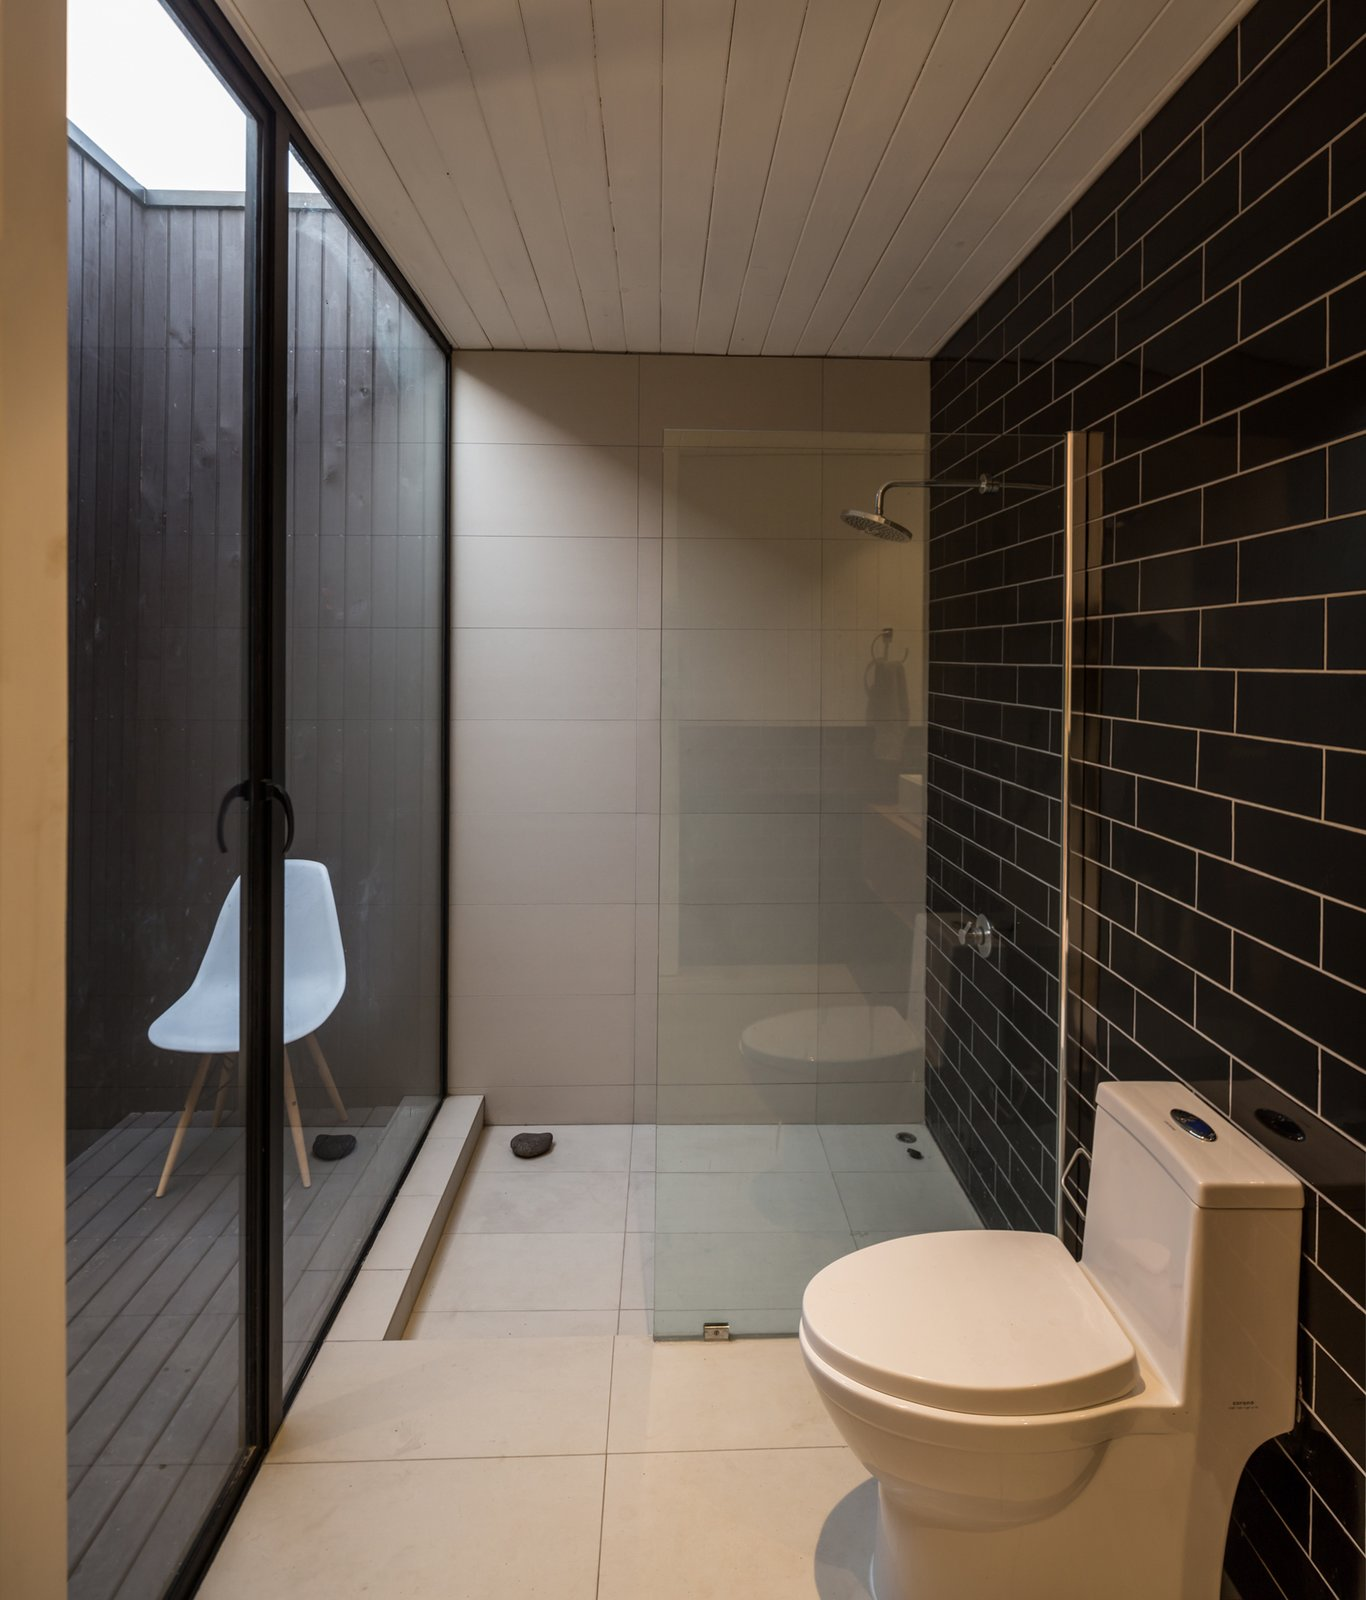 Bath Room, Full Shower, Two Piece Toilet, Open Shower, Subway Tile Wall, and Corner Shower Photo courtesy of Aryeh Kornfeld  Eames Molded Chairs